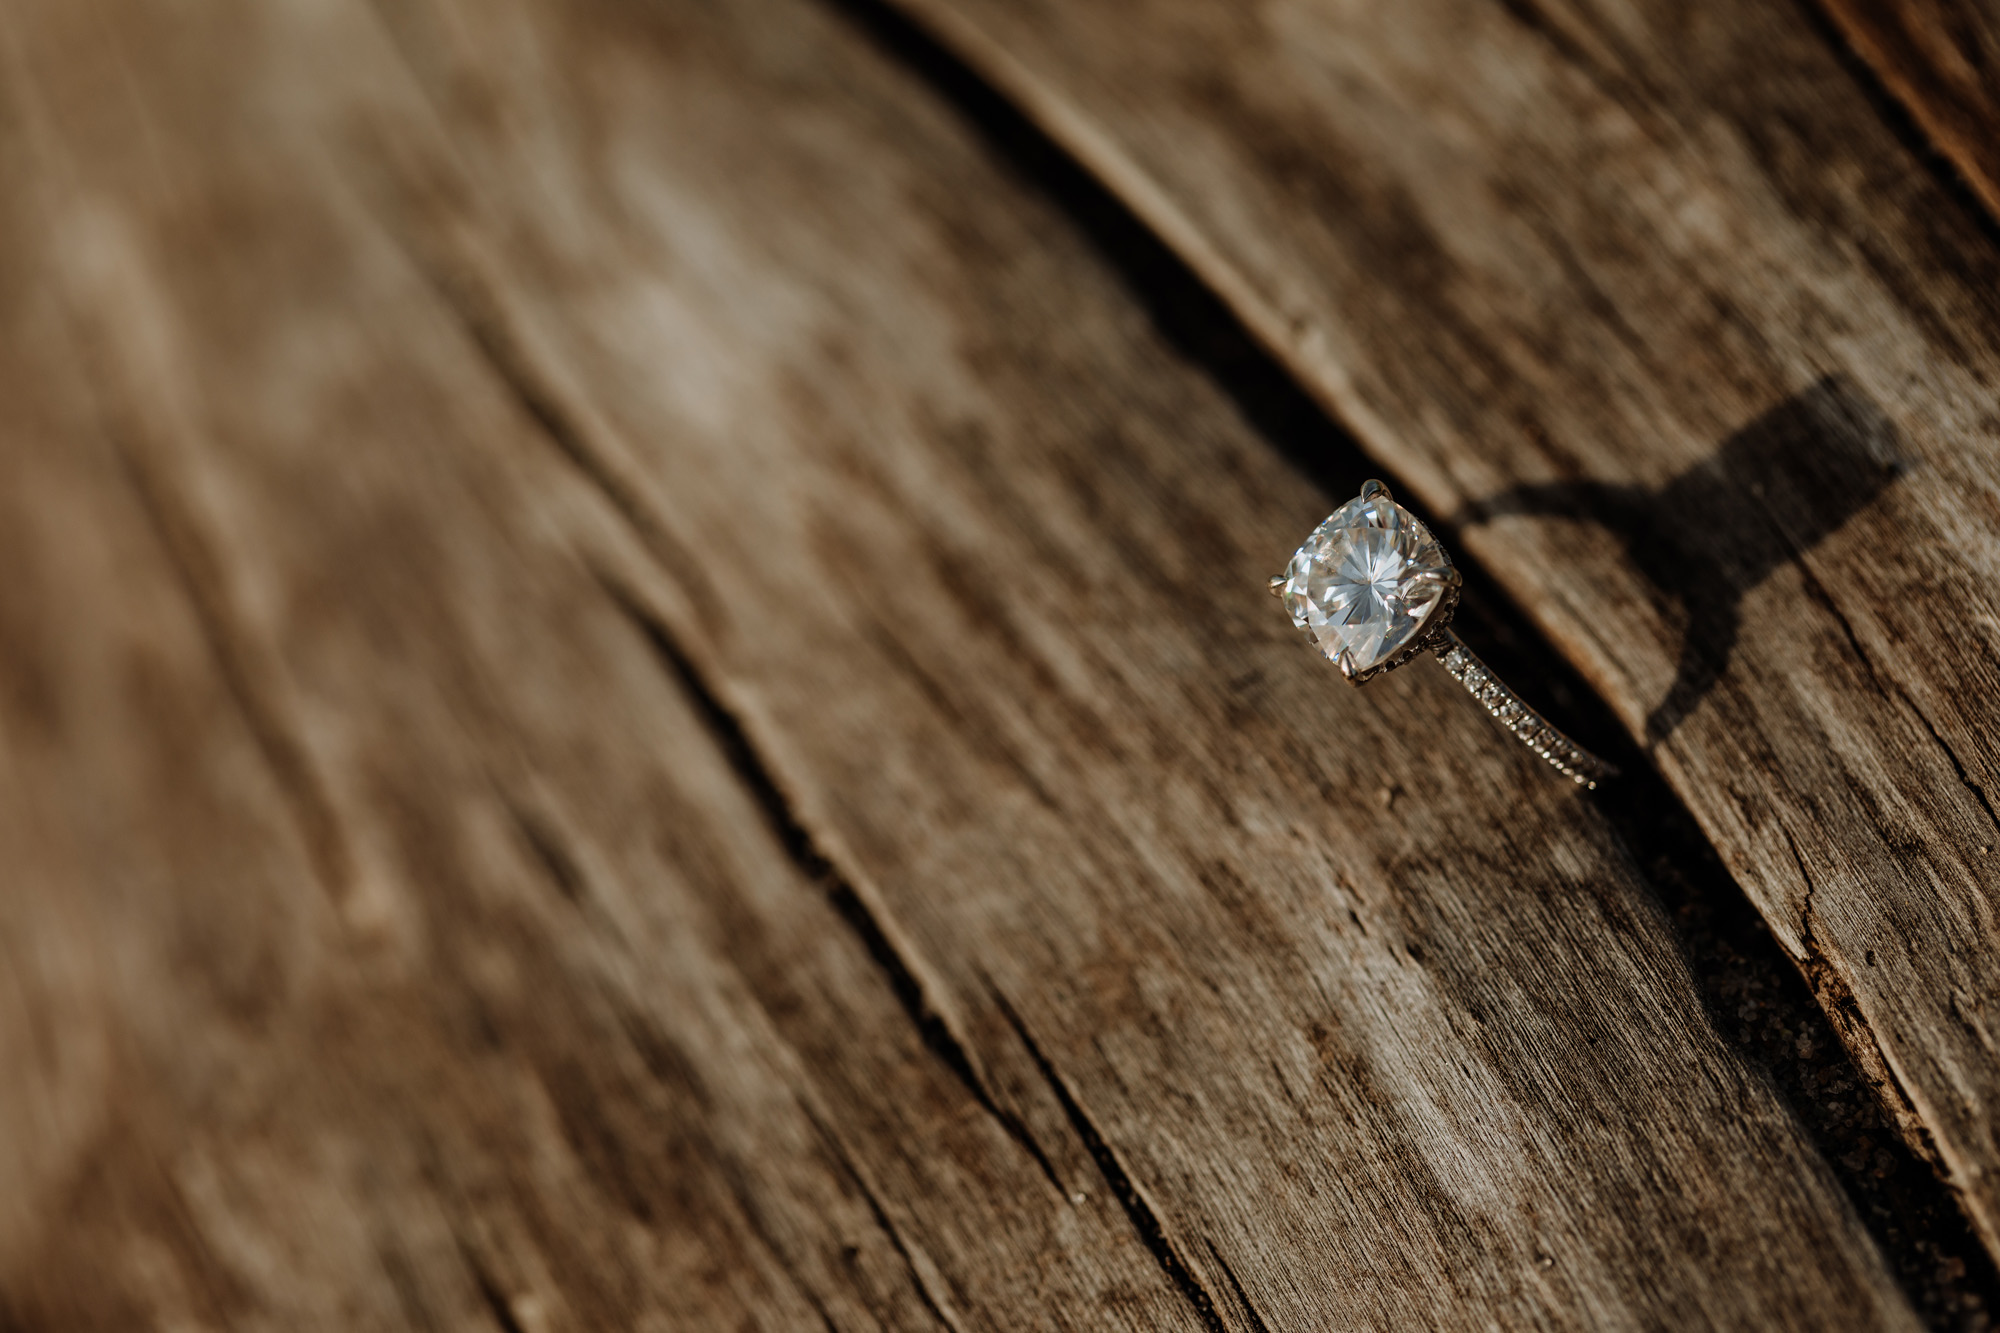 watch-hill-rhode-island-beach-engagement-ring-photos